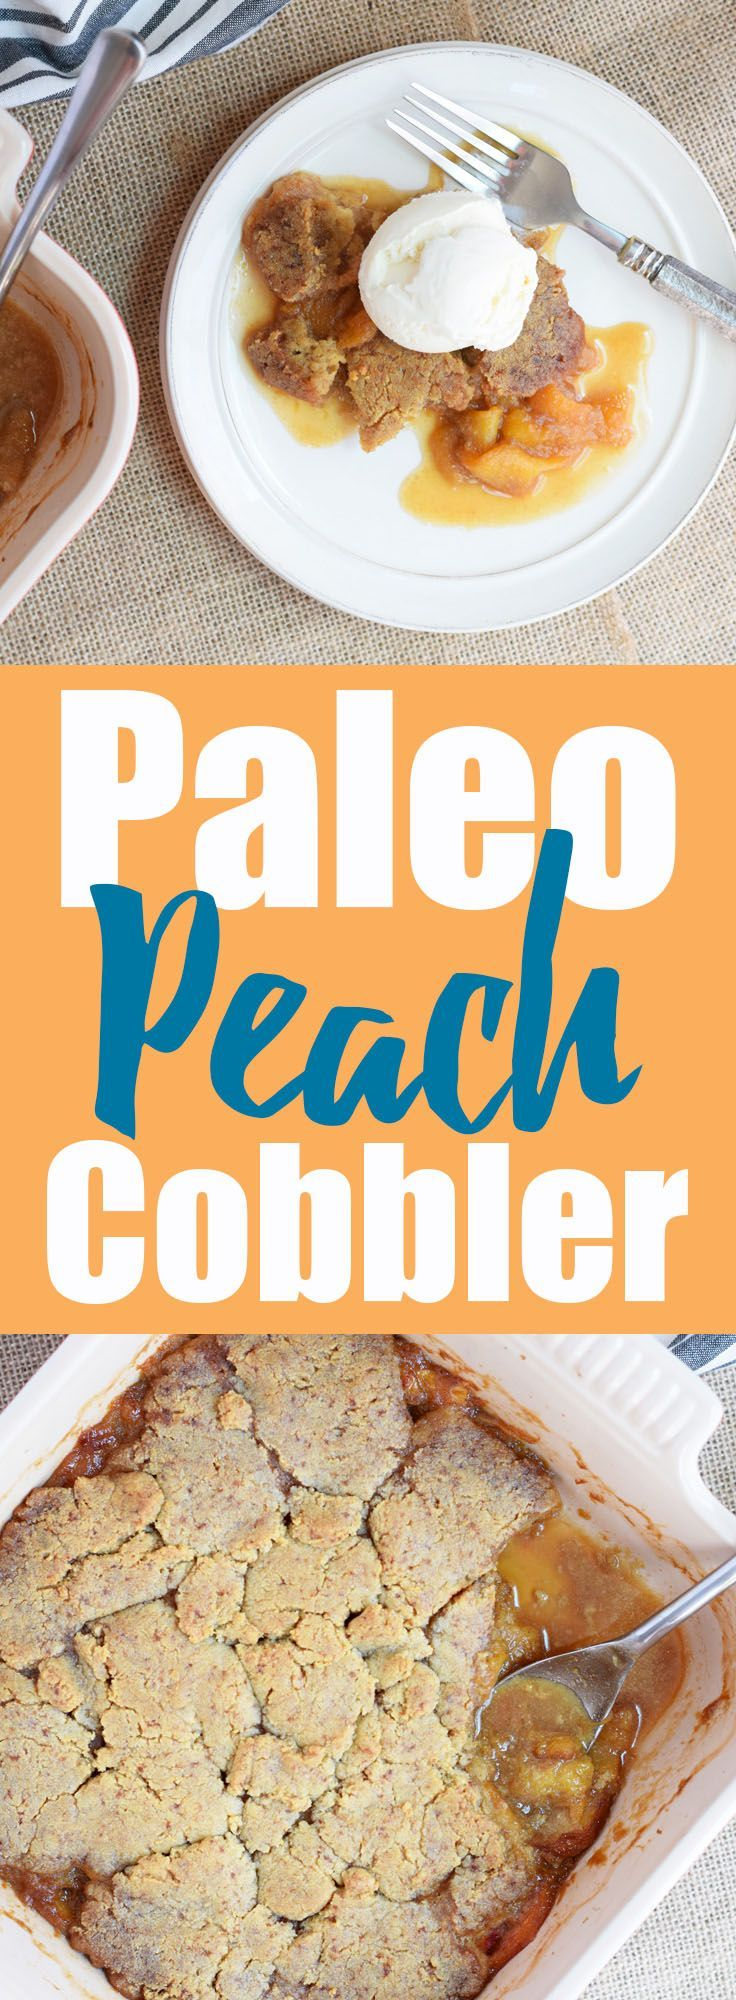 Easy Paleo Peach Cobbler from Living Loving Paleo! | paleo, dairy-free, refined sugar-free and gluten-free | This is a must make for your next summer party, you can use fresh or frozen peaches!